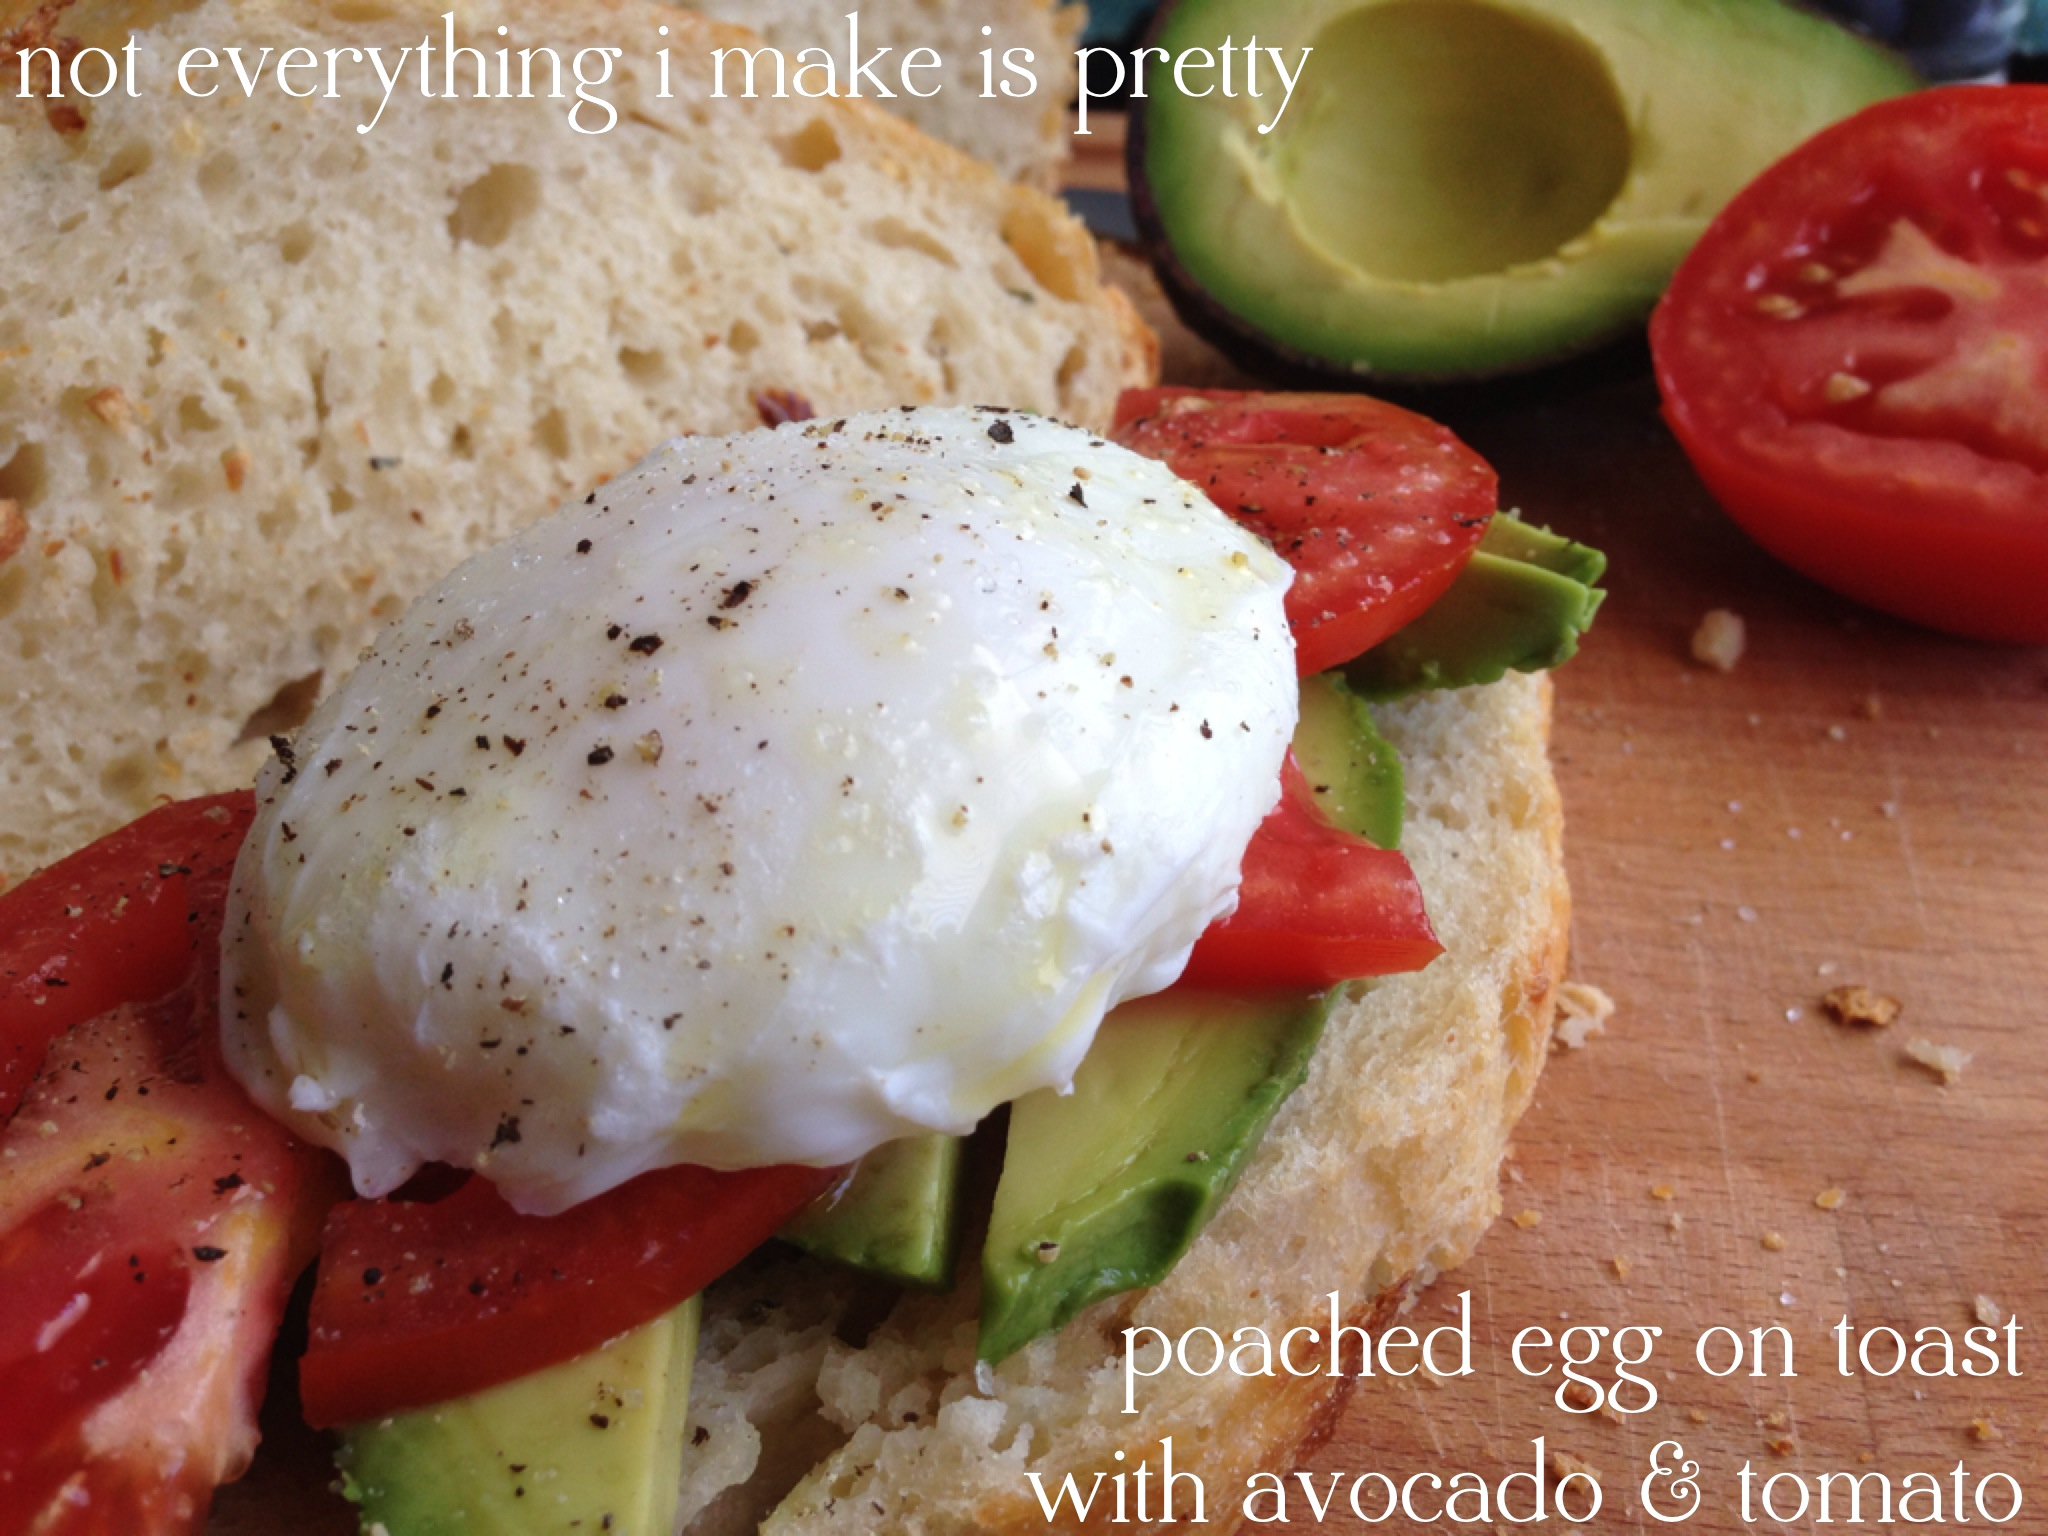 Poached Egg on Toast with Avocado & Tomato